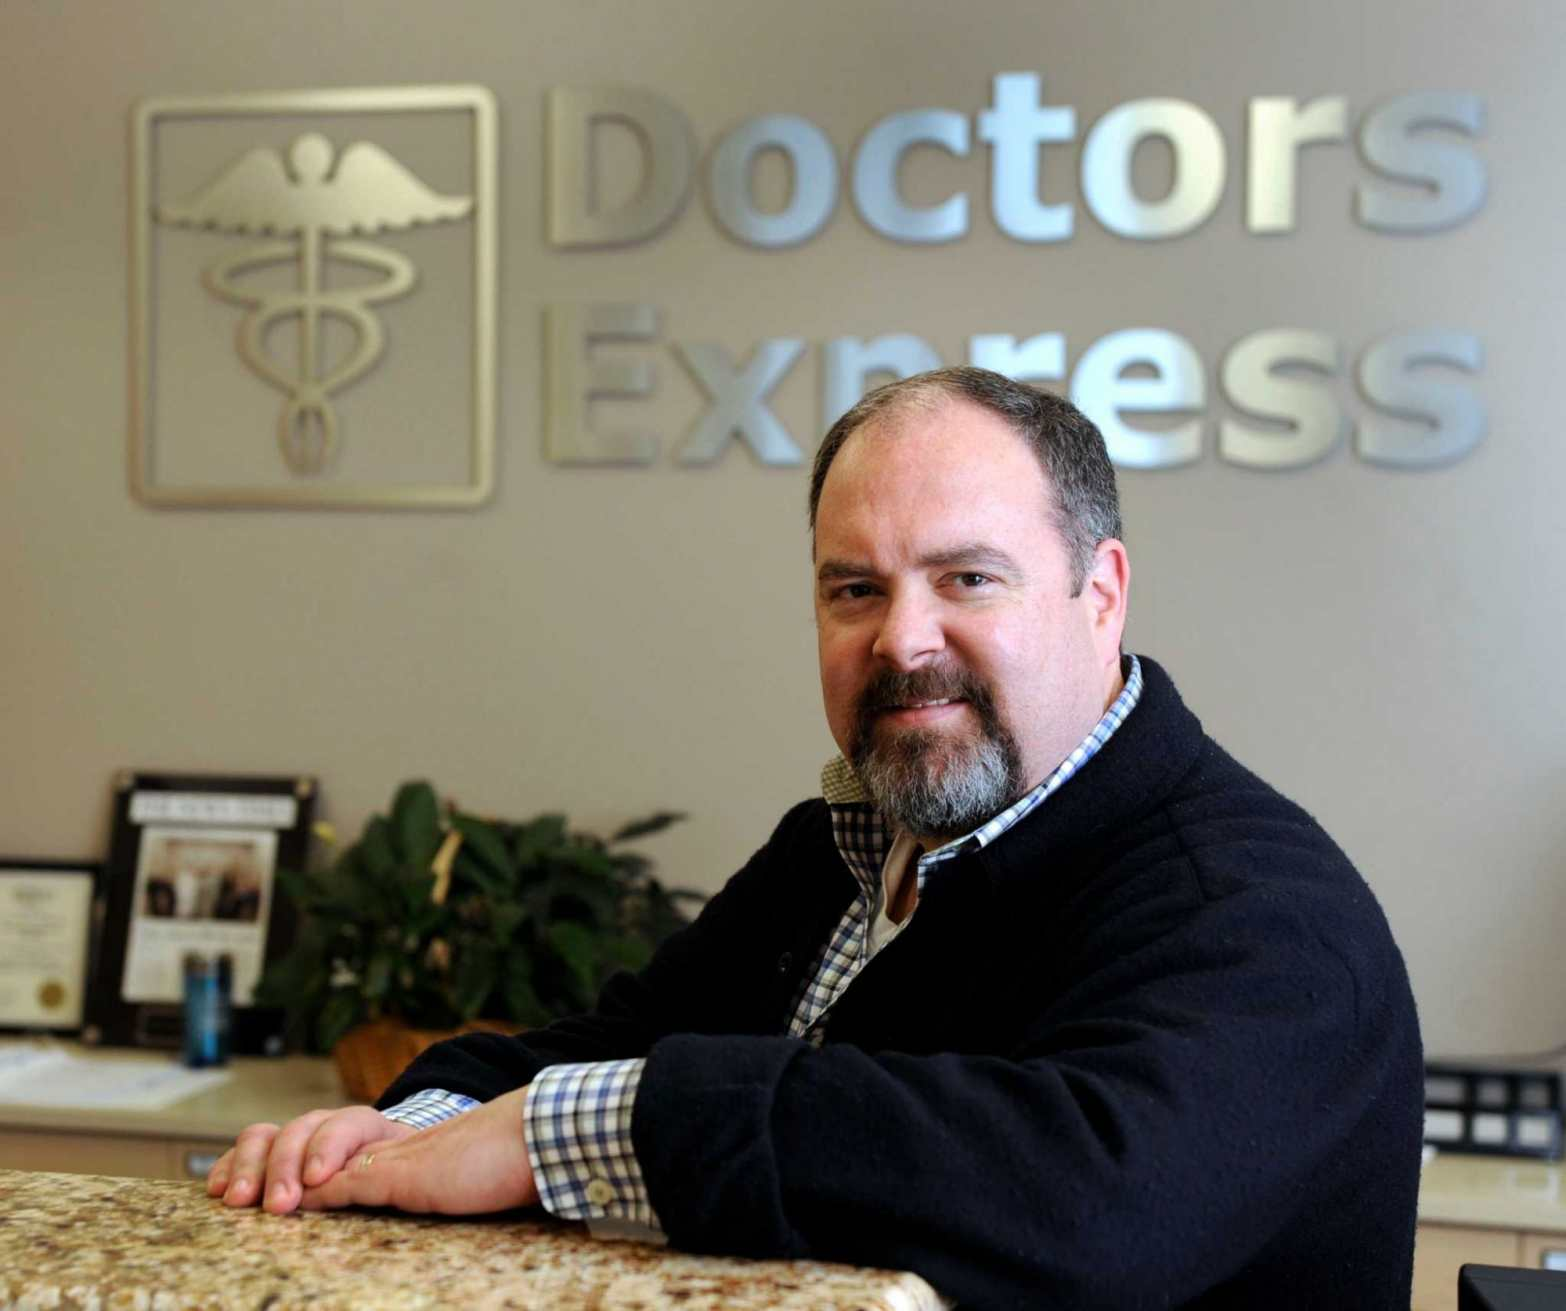 Tom Kelly, Co-Owner Doctors Express Danbury and West Hartford